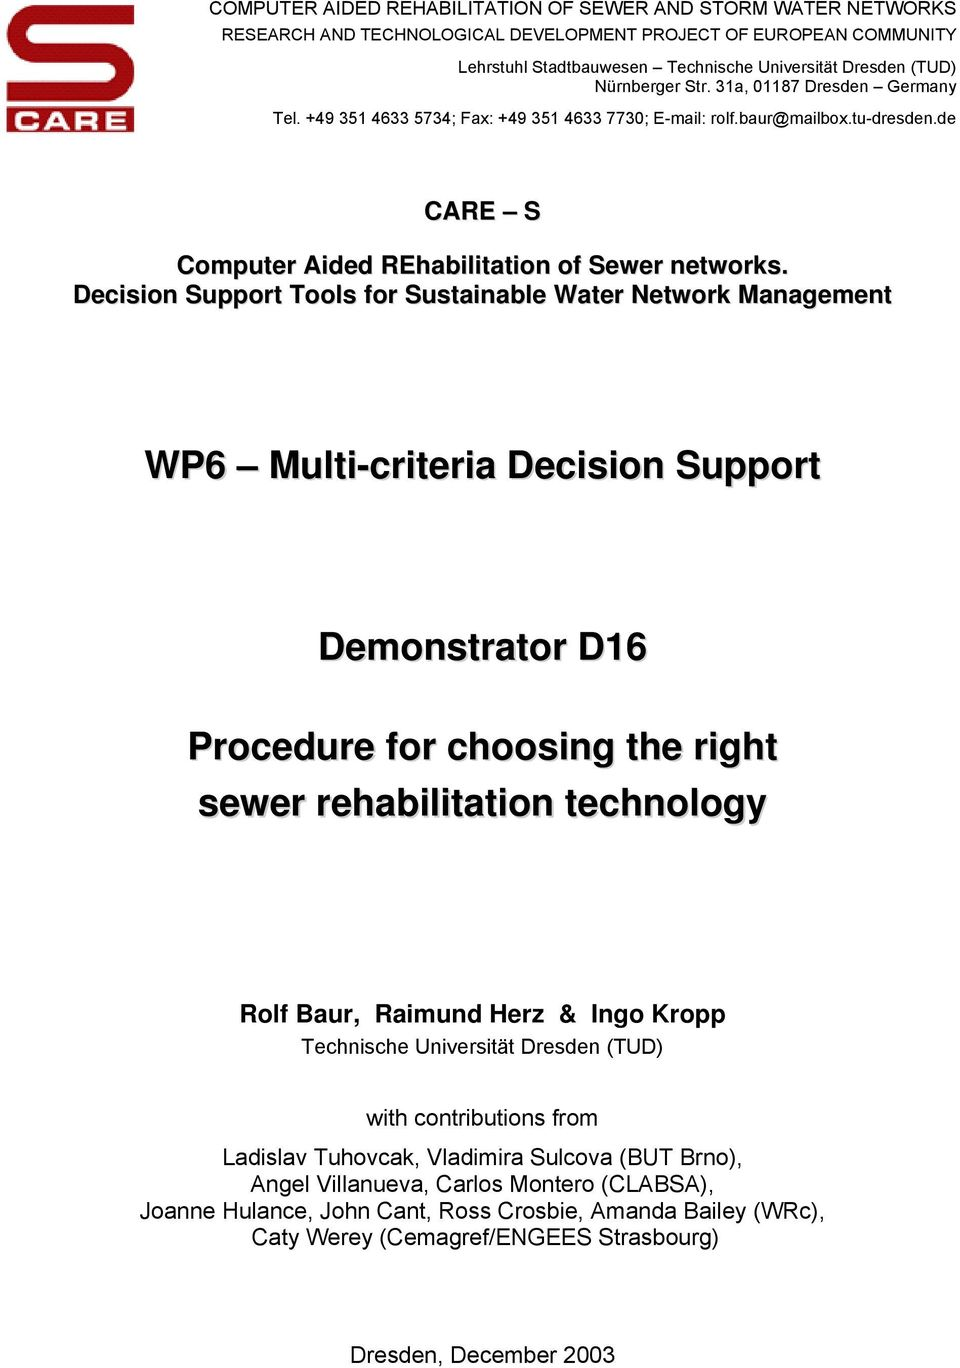 Decson Support Tools for Sustnble Wter Networ Mngement WP6 Mult-crter Decson Support Demonstrtor D16 Procedure for choosng the rght sewer rehbltton technology Rolf Bur, Rmund Herz & Ingo Kropp